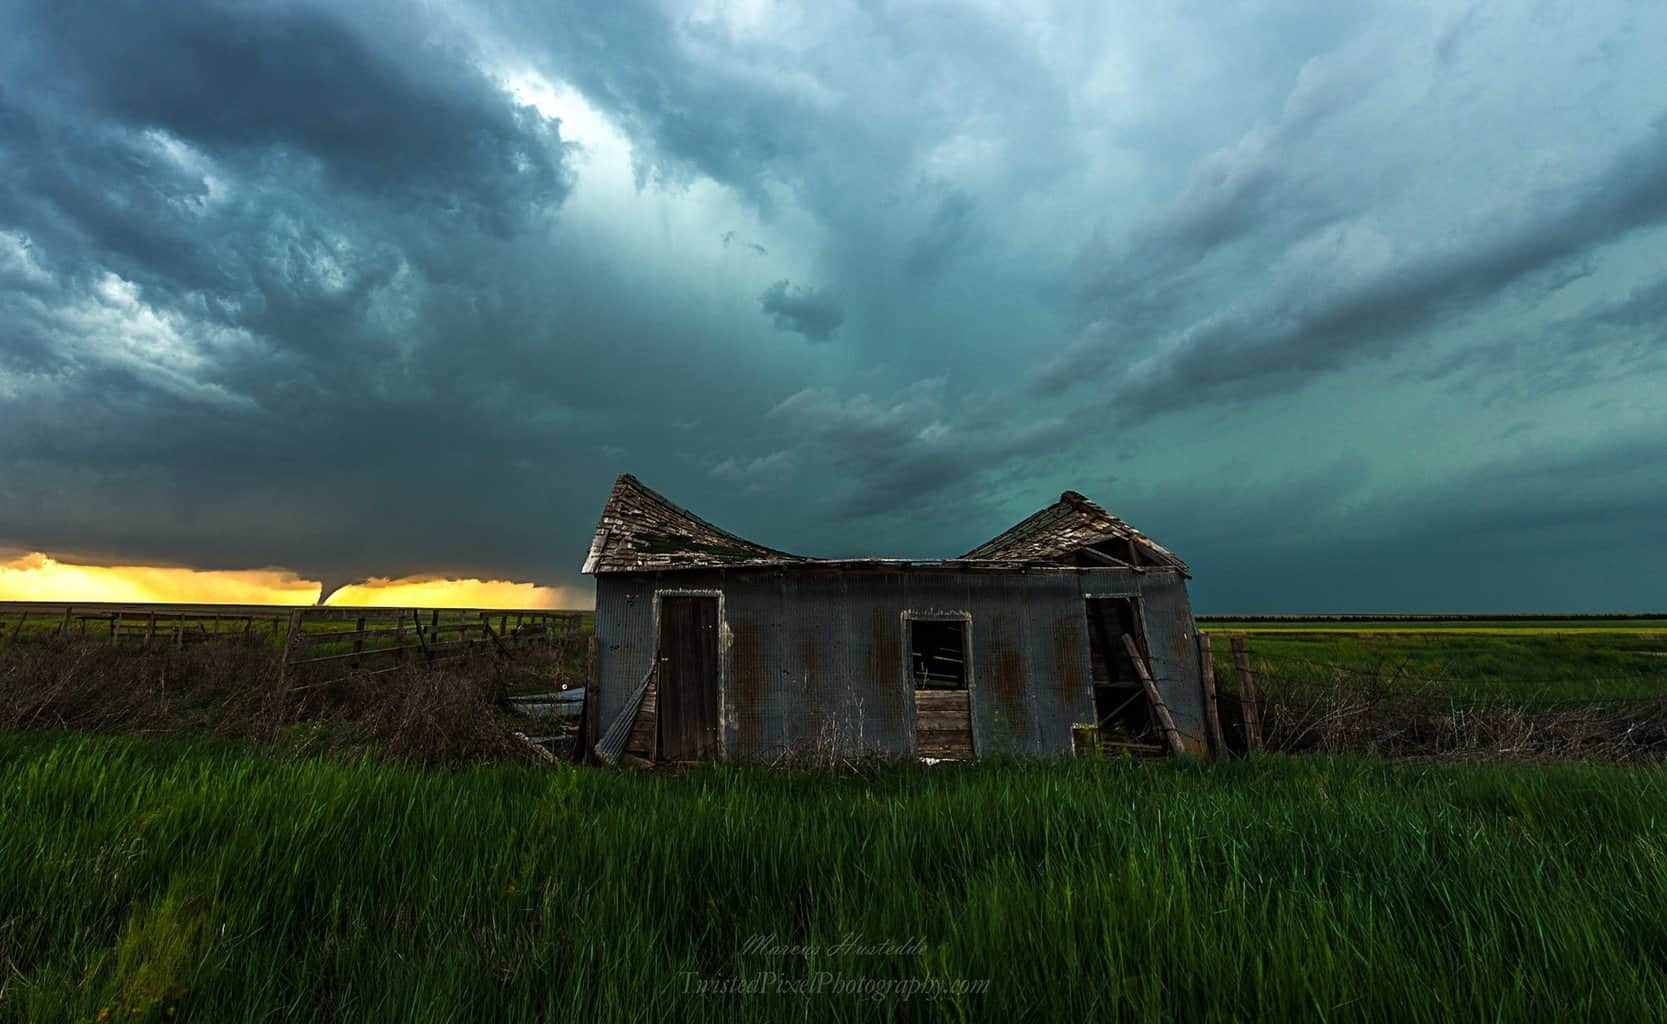 """Horizon Danger""...one of many tornadoes witnessed on 5-24-16 north of the obvious Dodge City target near Ness City, KS...was fortunate enough to find this abandoned structure right as the tornado was forming...shot at 14 mm full frame."